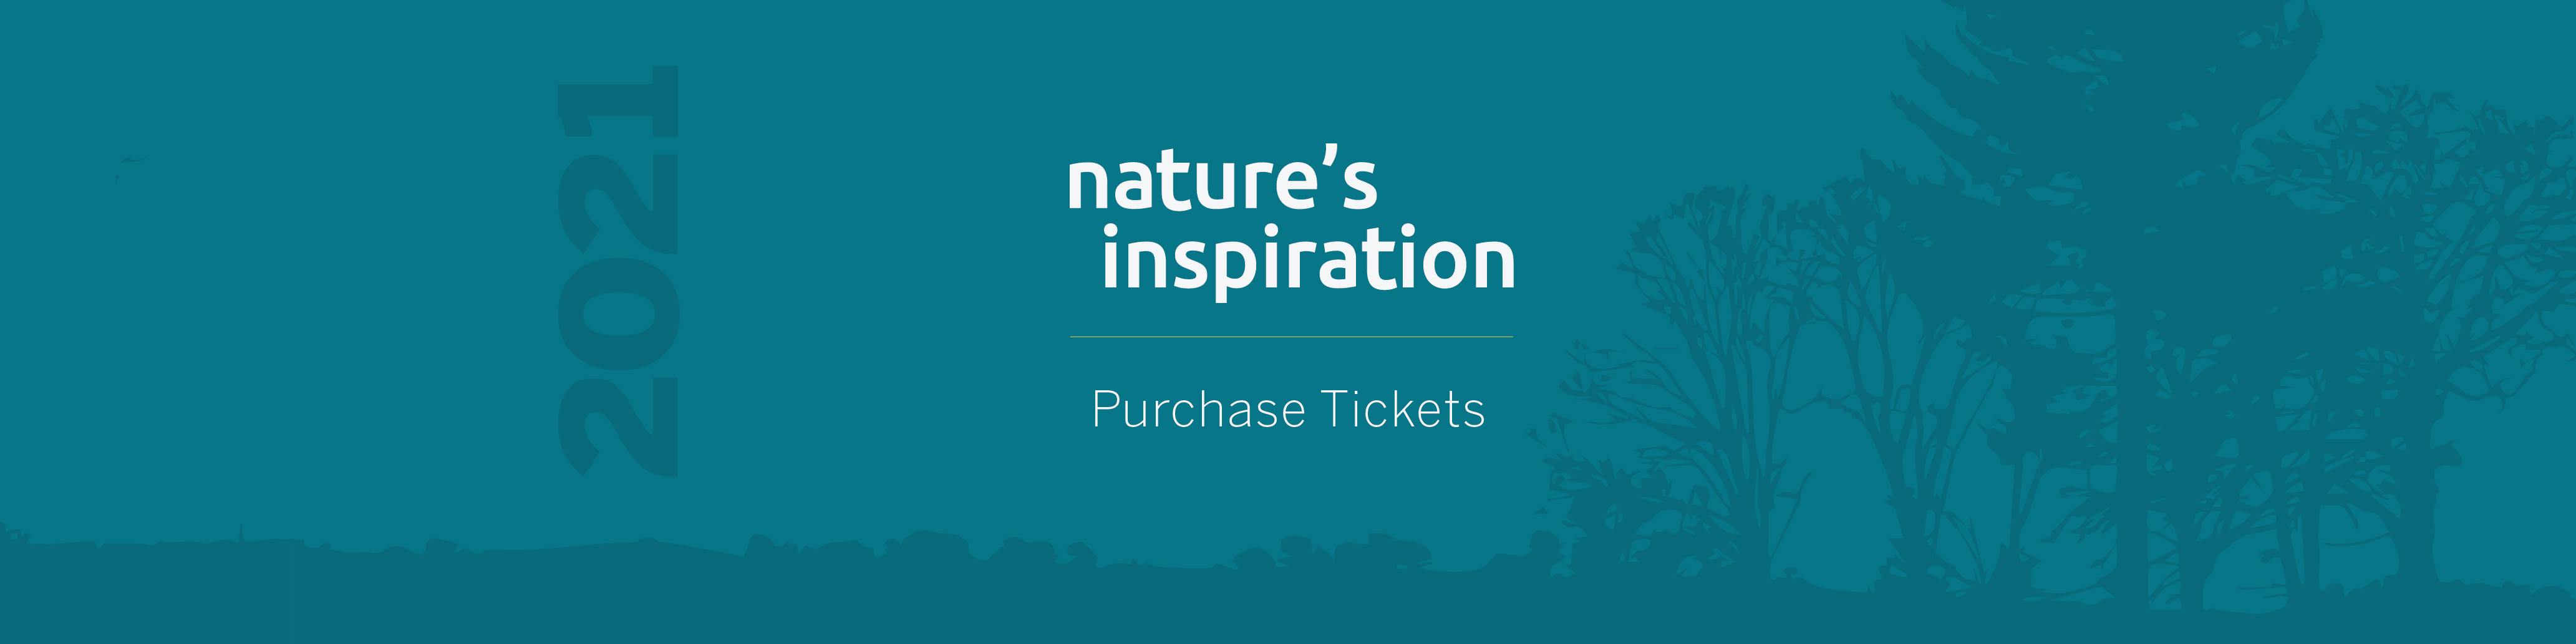 2021 Natures Inspiration - Tickets Banner